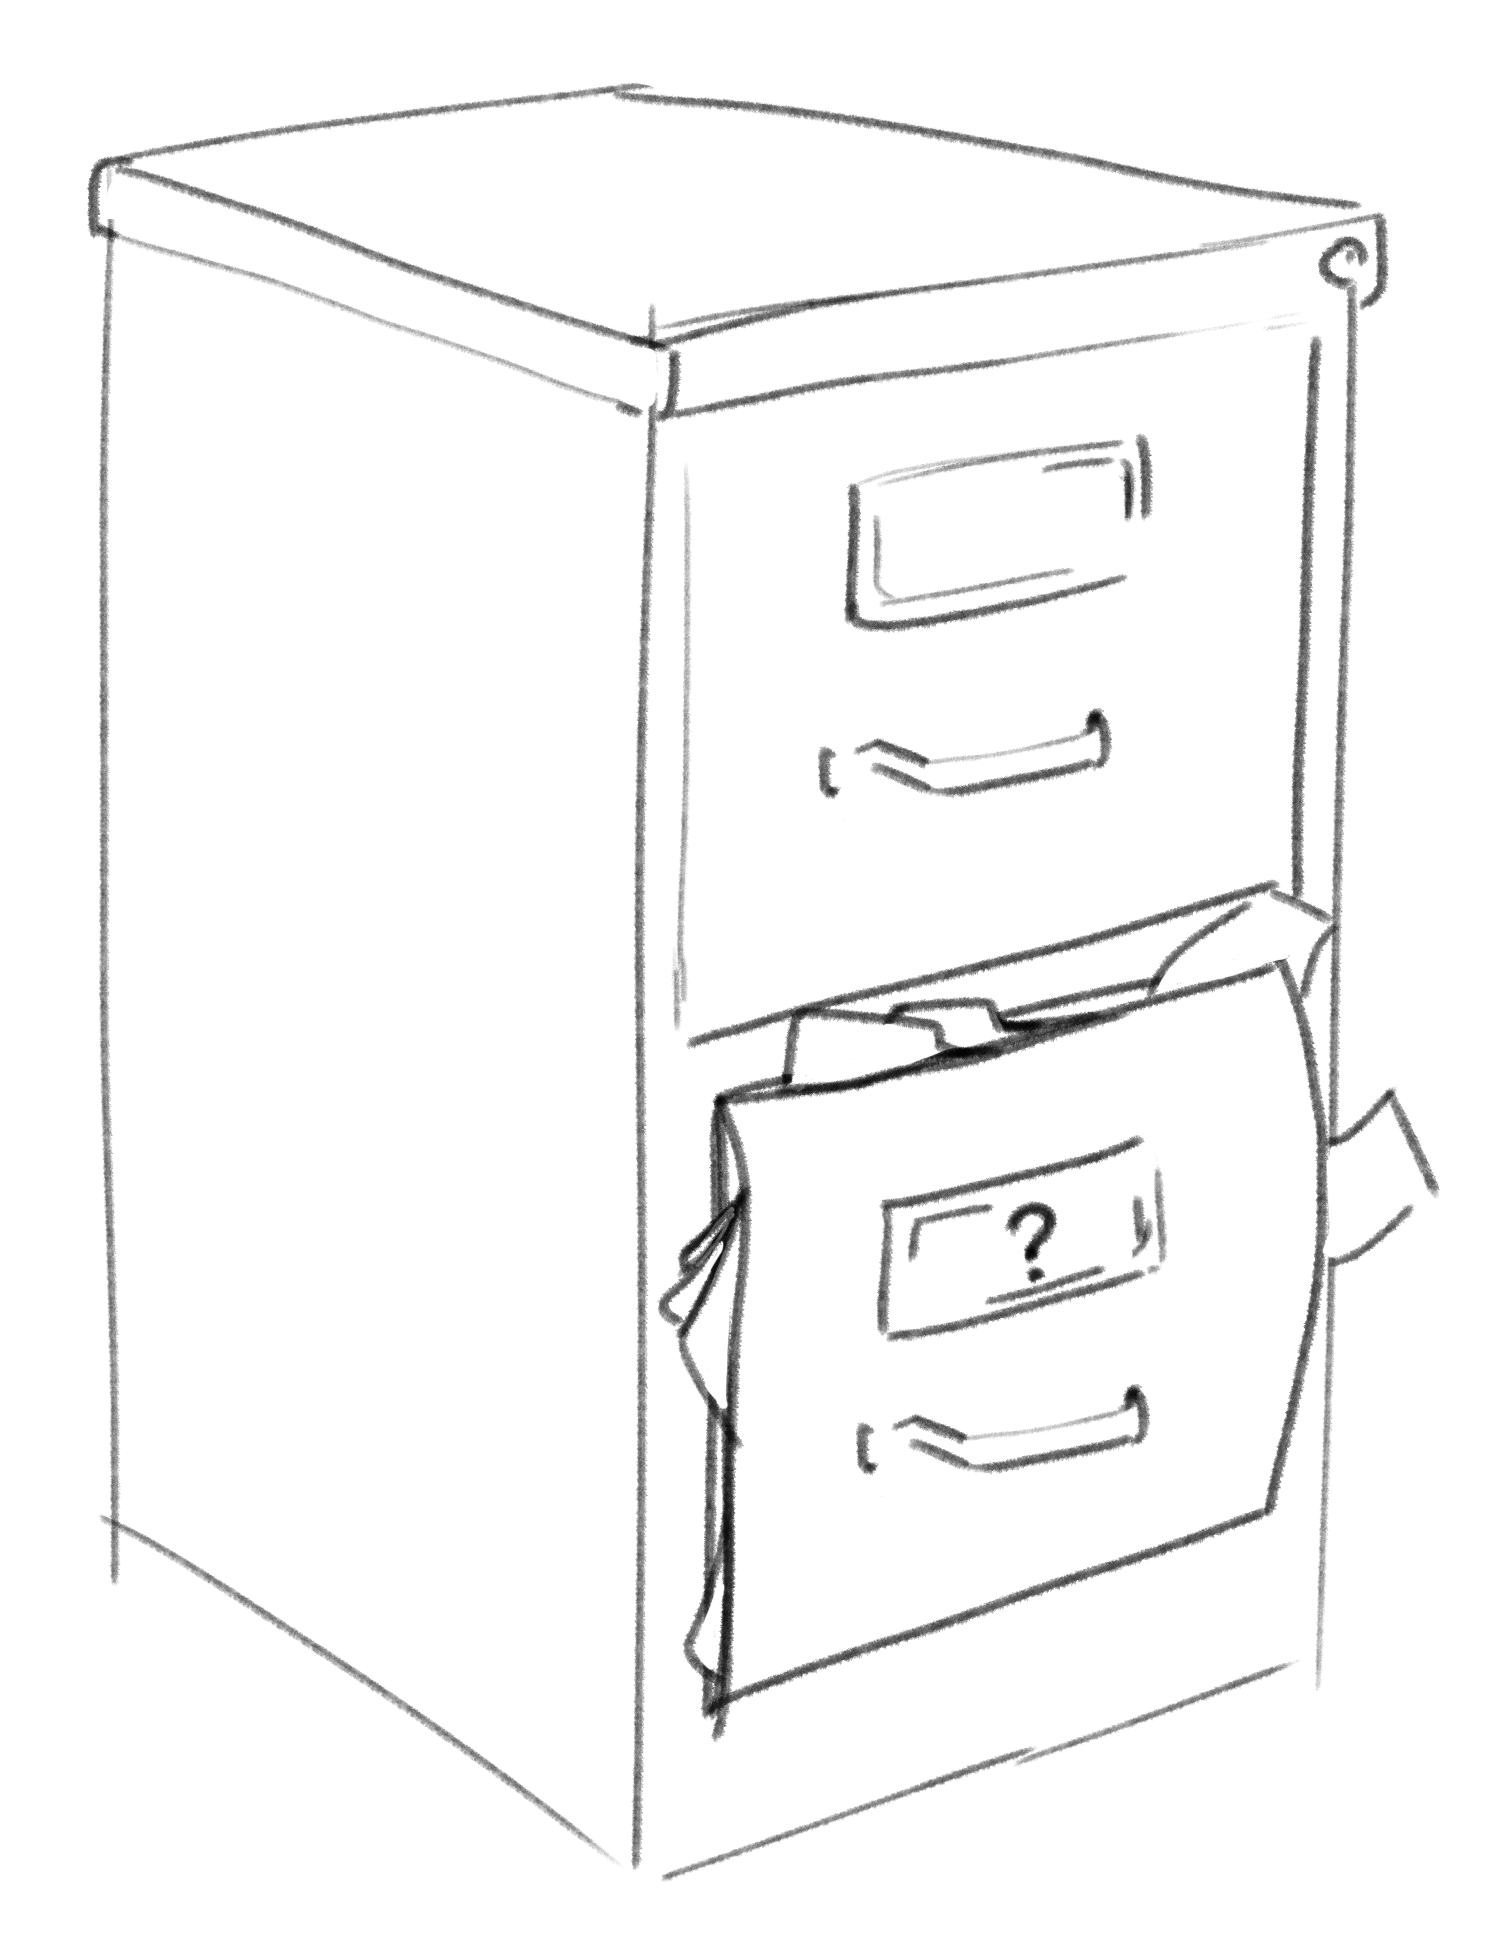 a drawing of a file cabinet about to burst open